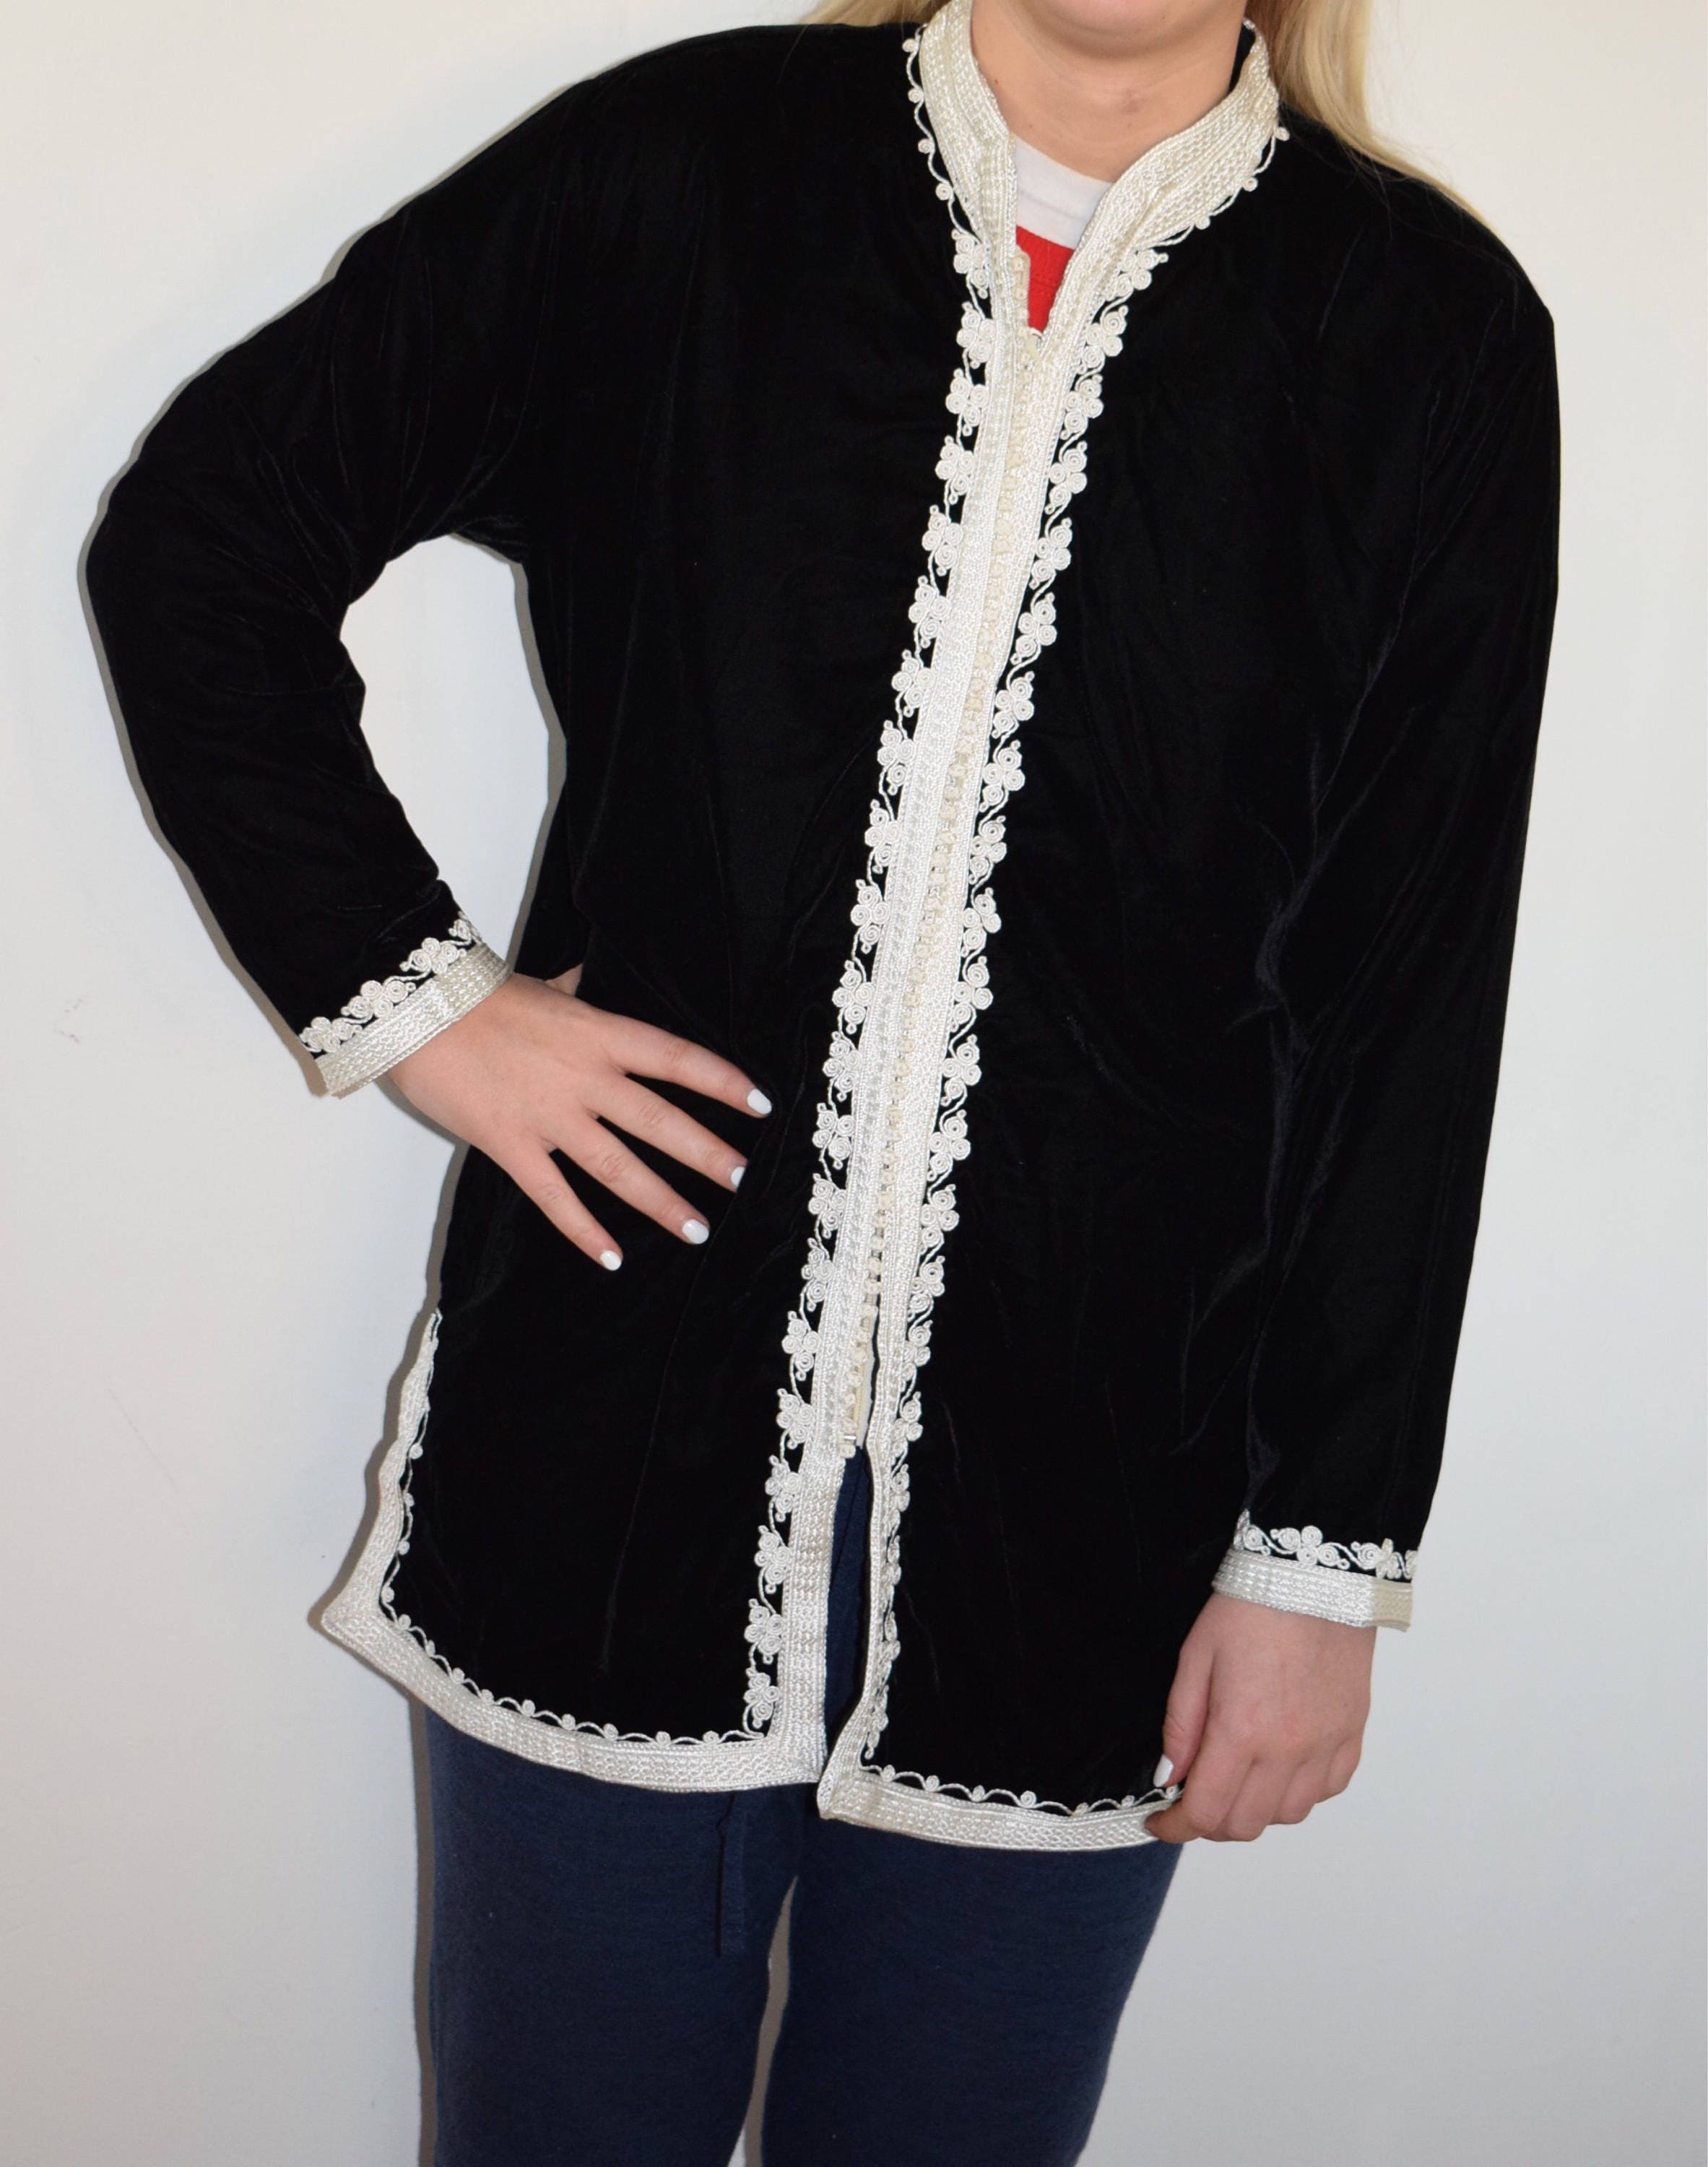 85 Stunning Bohemian Style Interior Design Ideas For Your: Stunning Bohemian Moroccan Tunic Jacket With Nehru Collar